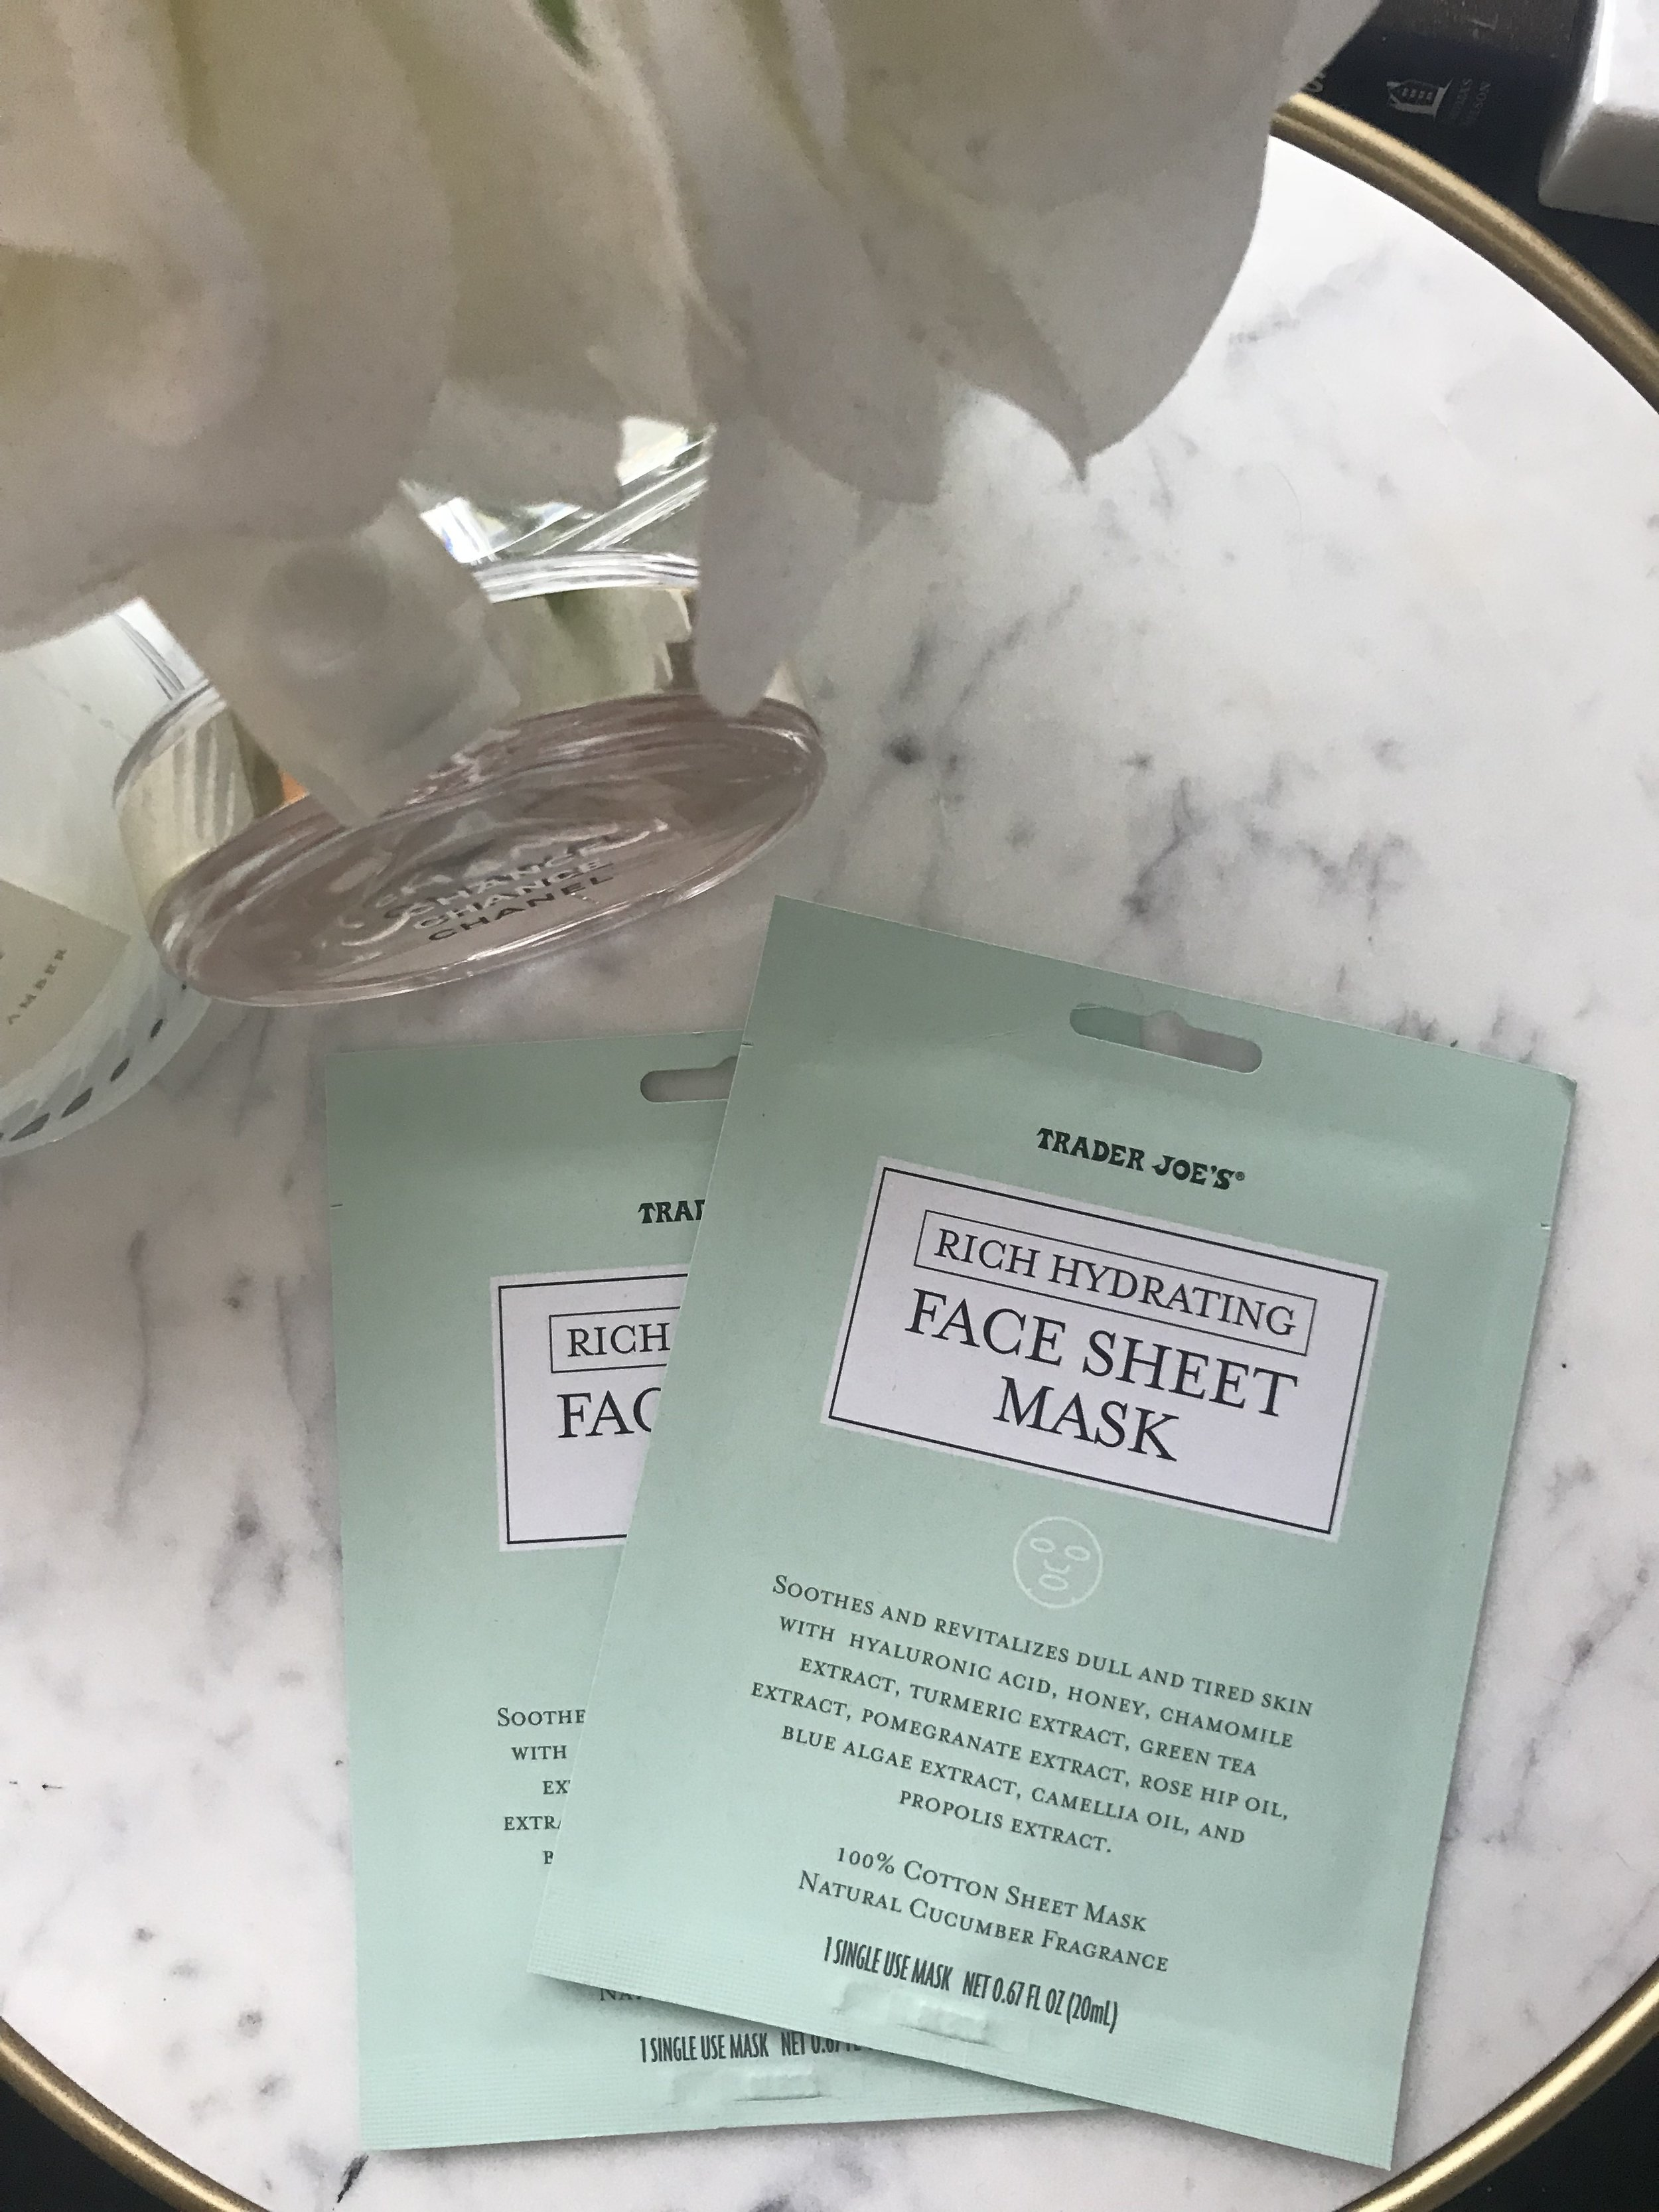 Trader Joe's Rich Hydrating Face Sheet Mask - My favorite old standby. (: